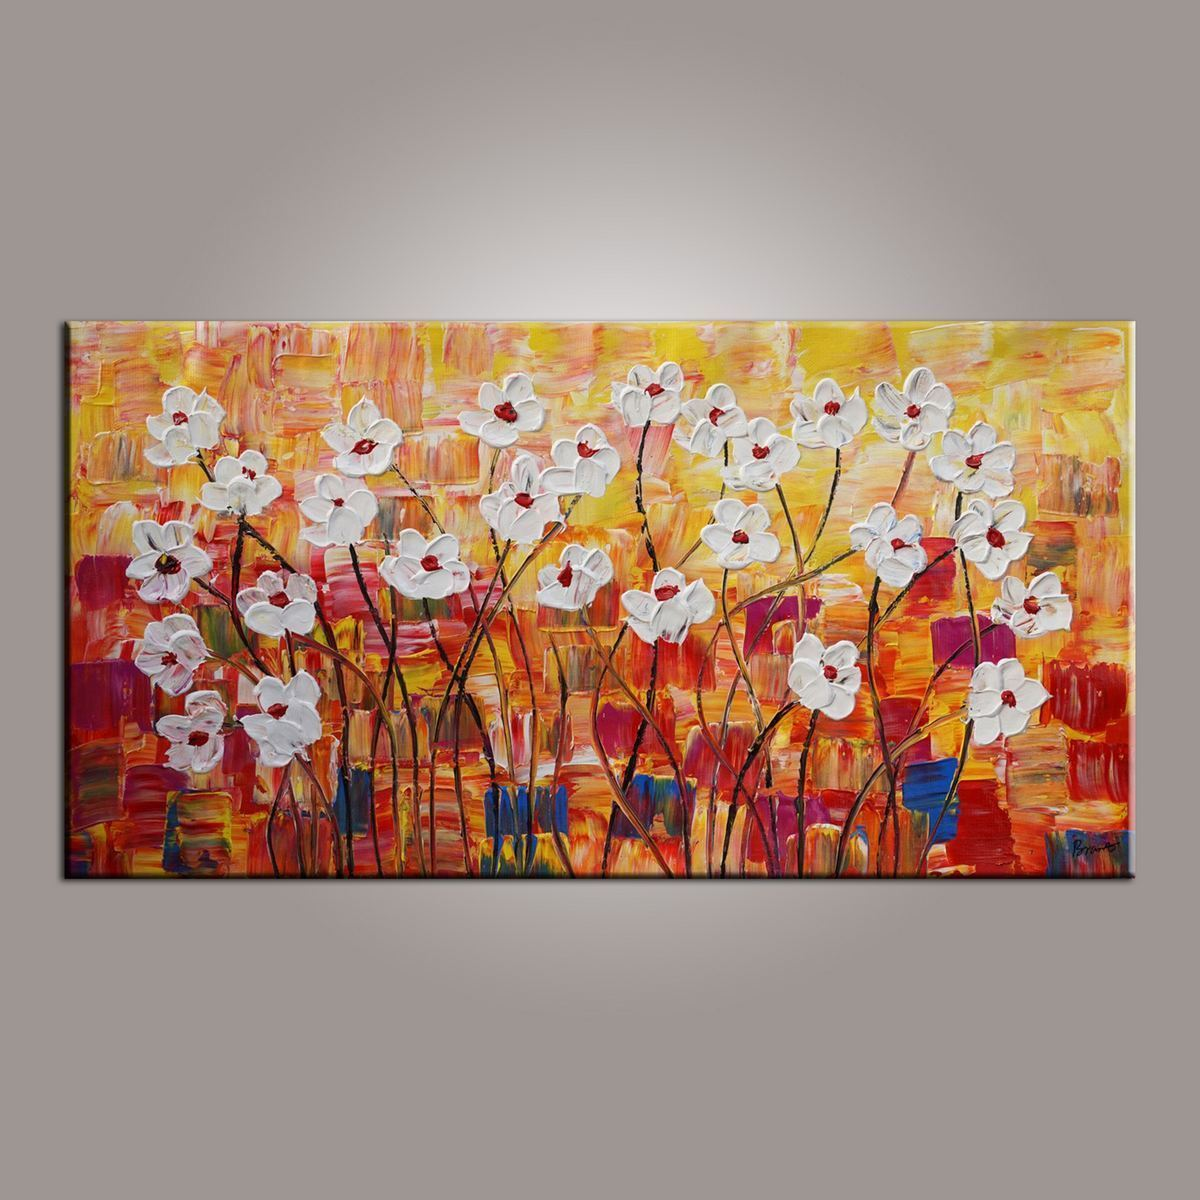 Canvas Wall Art, Painting for Sale, Flower Art, Spring Flower Painting, Abstract Art Painting, Bedroom Wall Art, Canvas Art, Modern Art, Contemporary Art - LargePantingArt.com